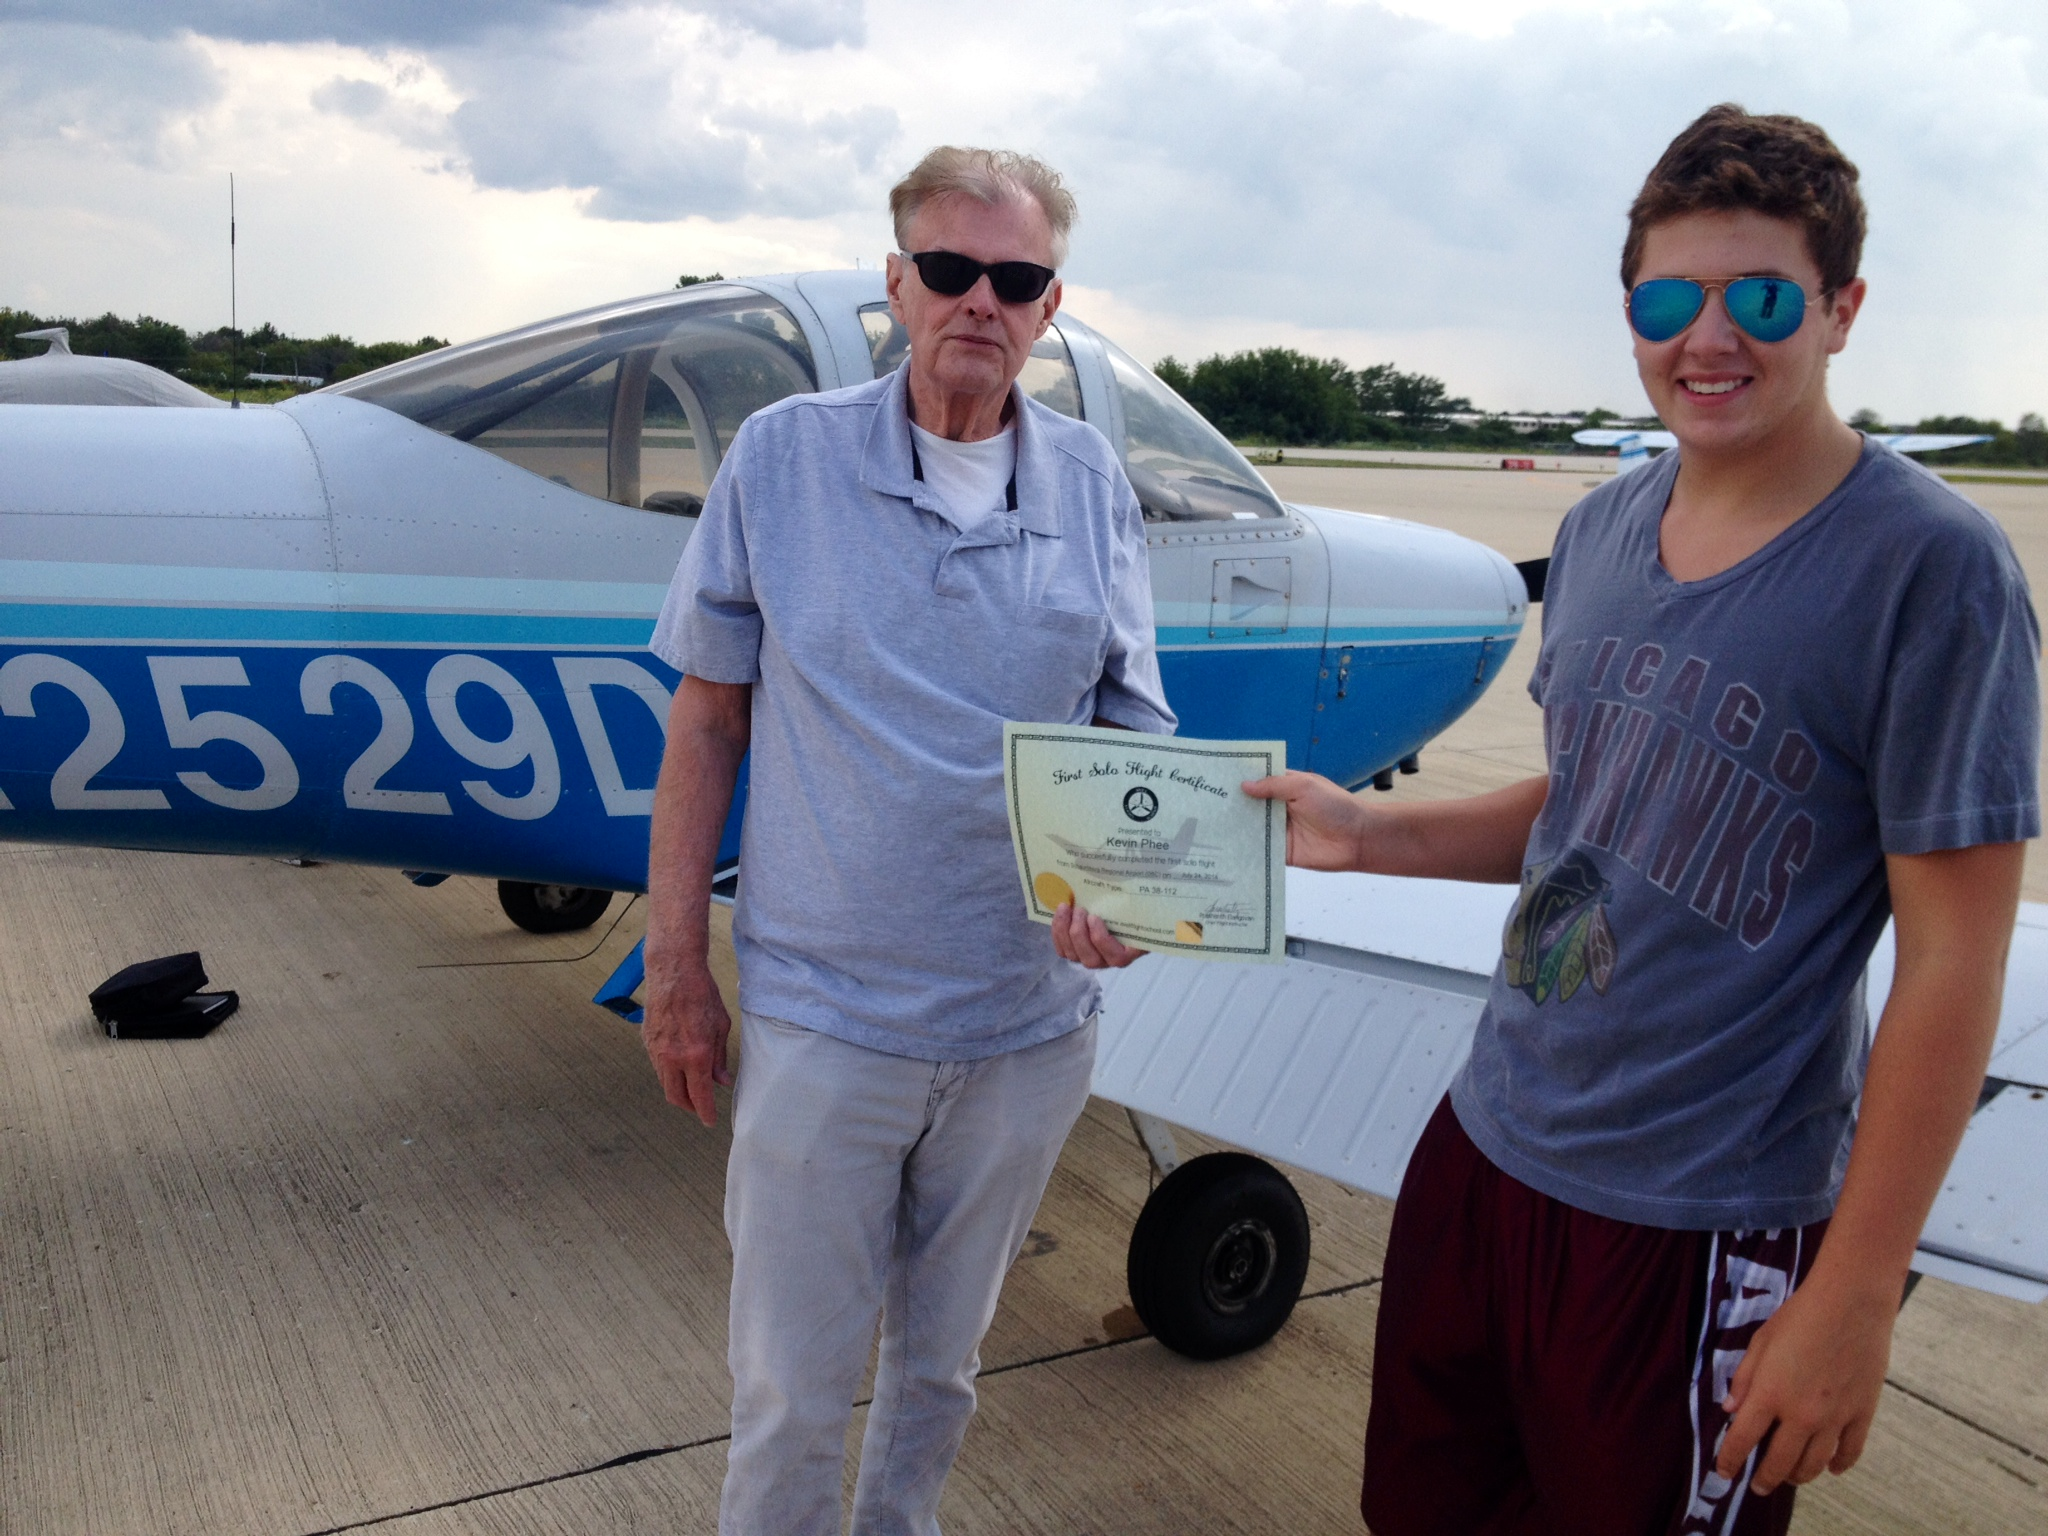 Kevin Phee First Solo-1